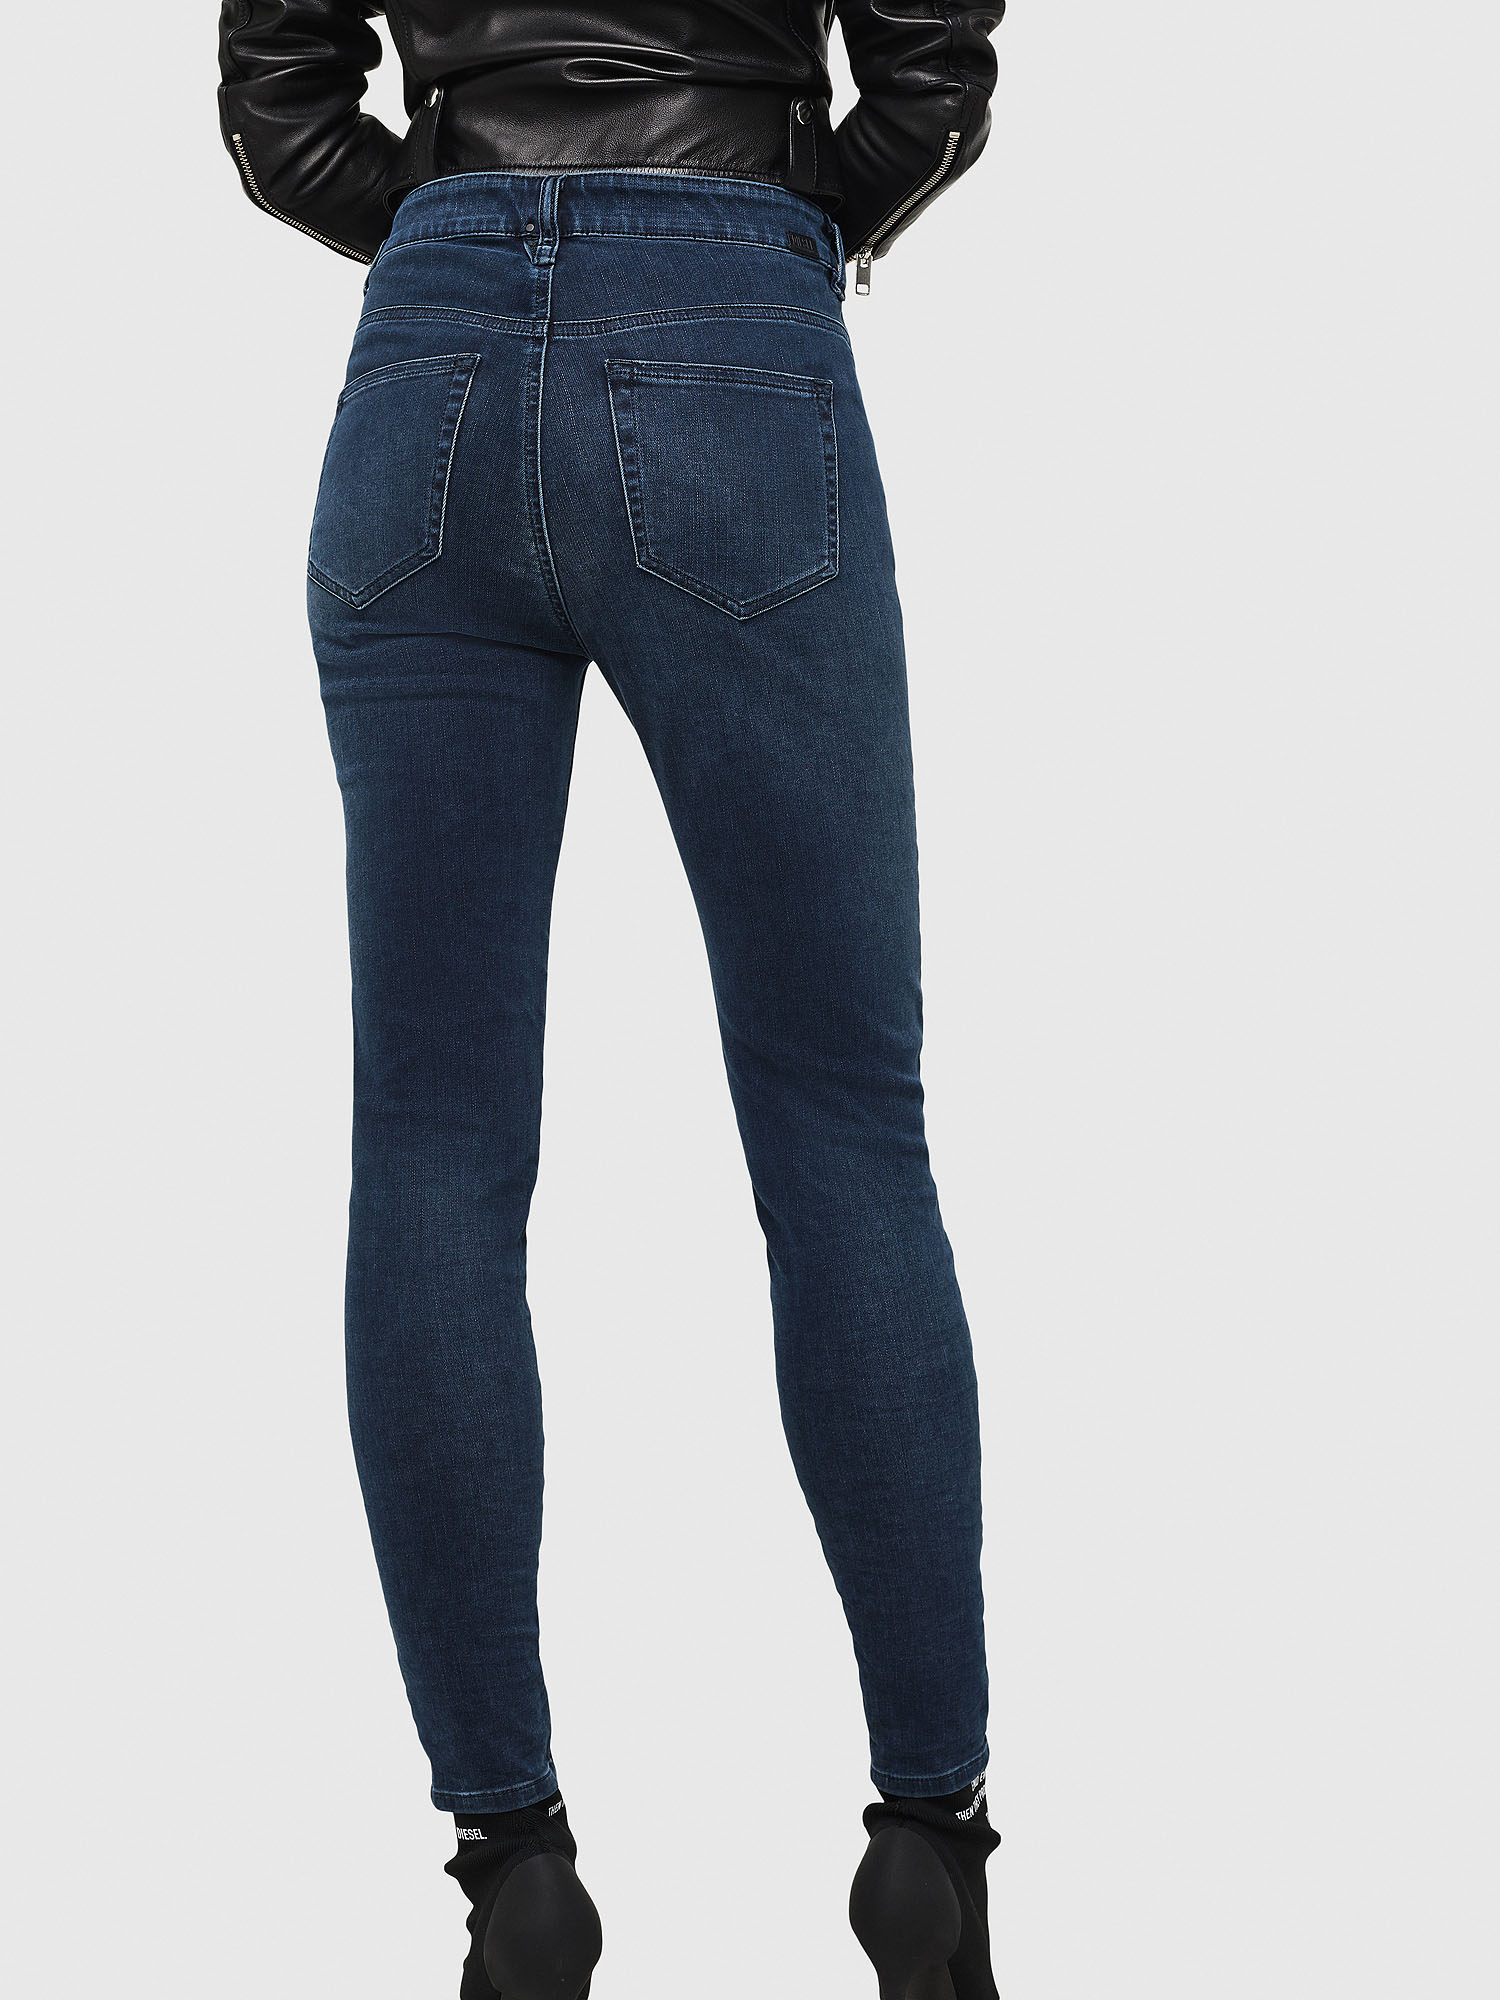 Diesel - Slandy High 084UT,  - Jeans - Image 2